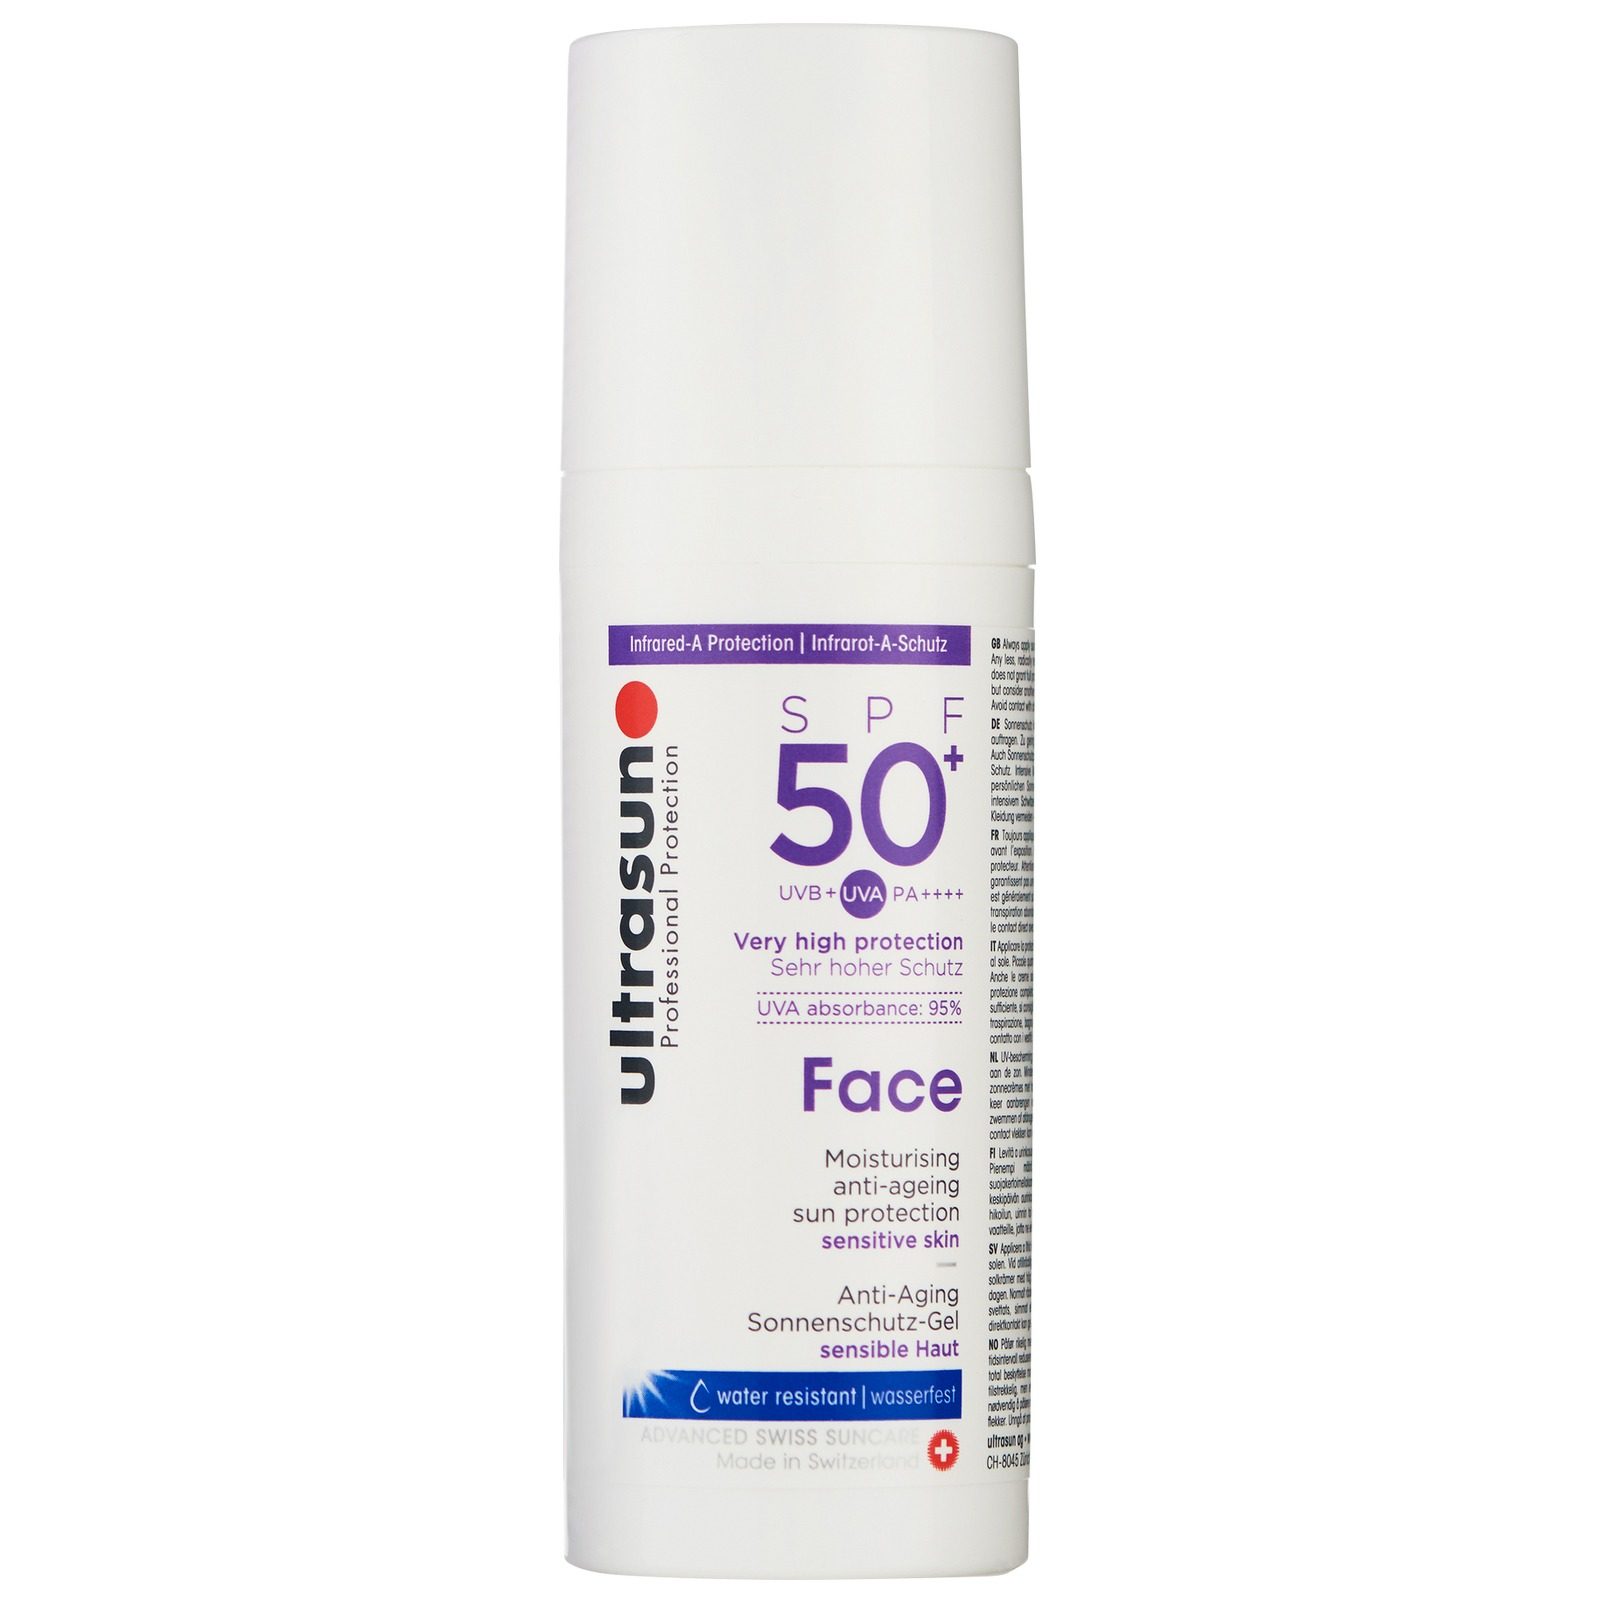 Ultrasun Face  Anti-Ageing Sun Protection For Sensitive Skin SPF50+ 50ml